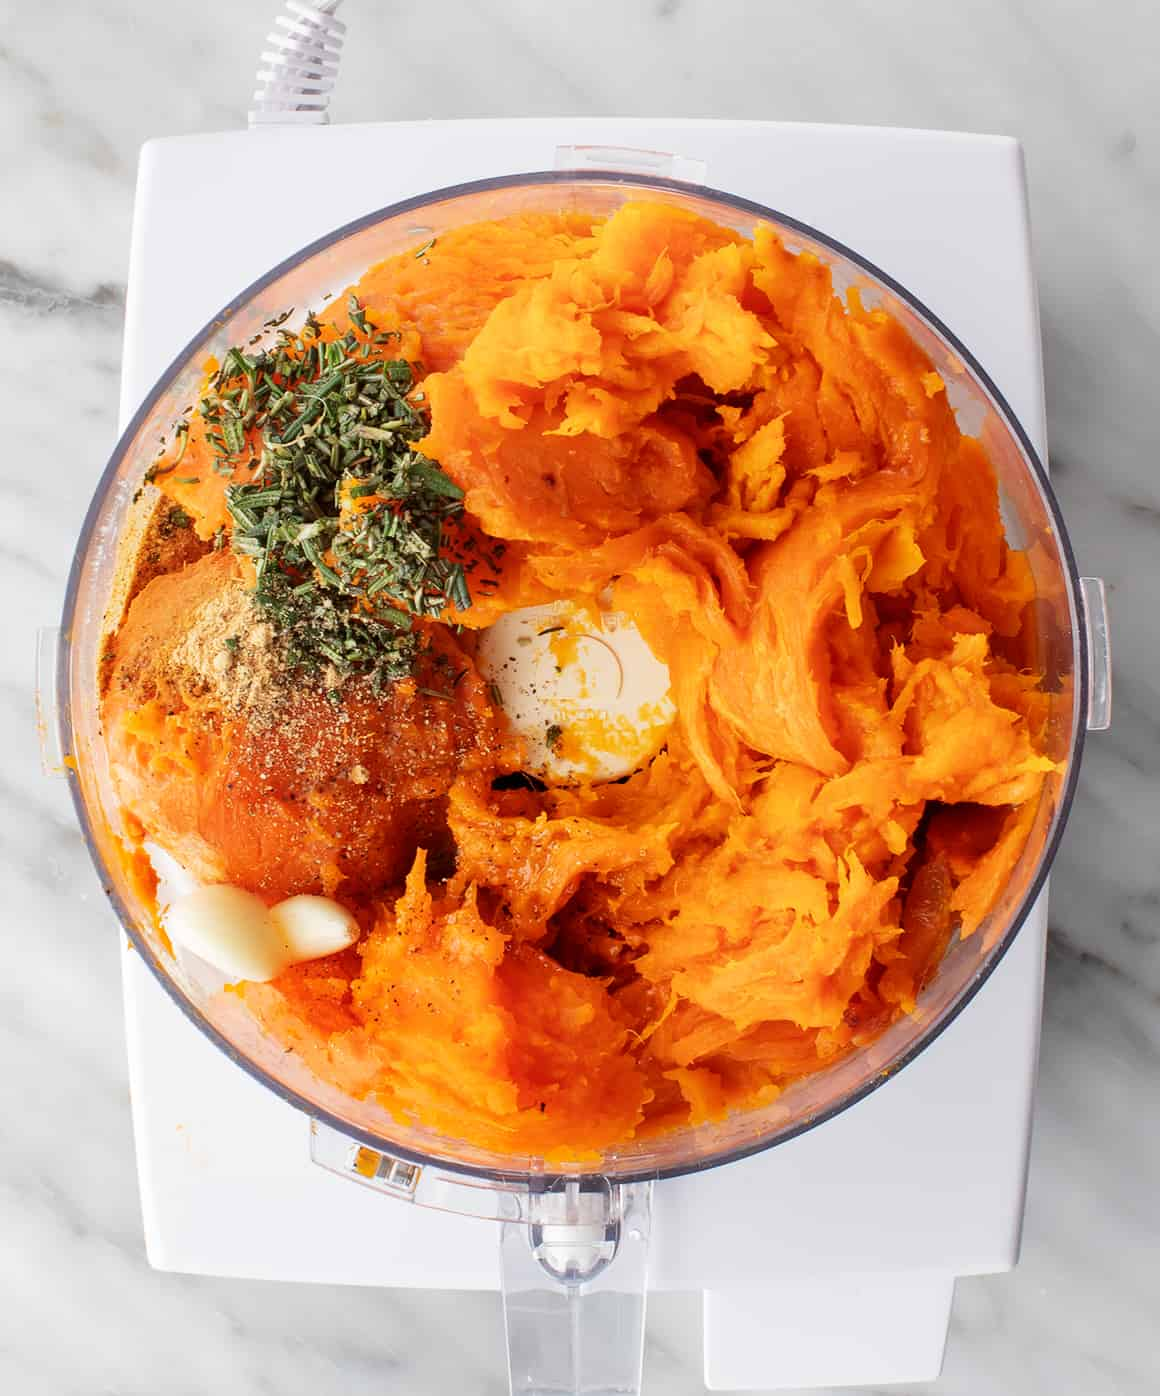 Baked sweet potato flesh and rosemary in a food processor